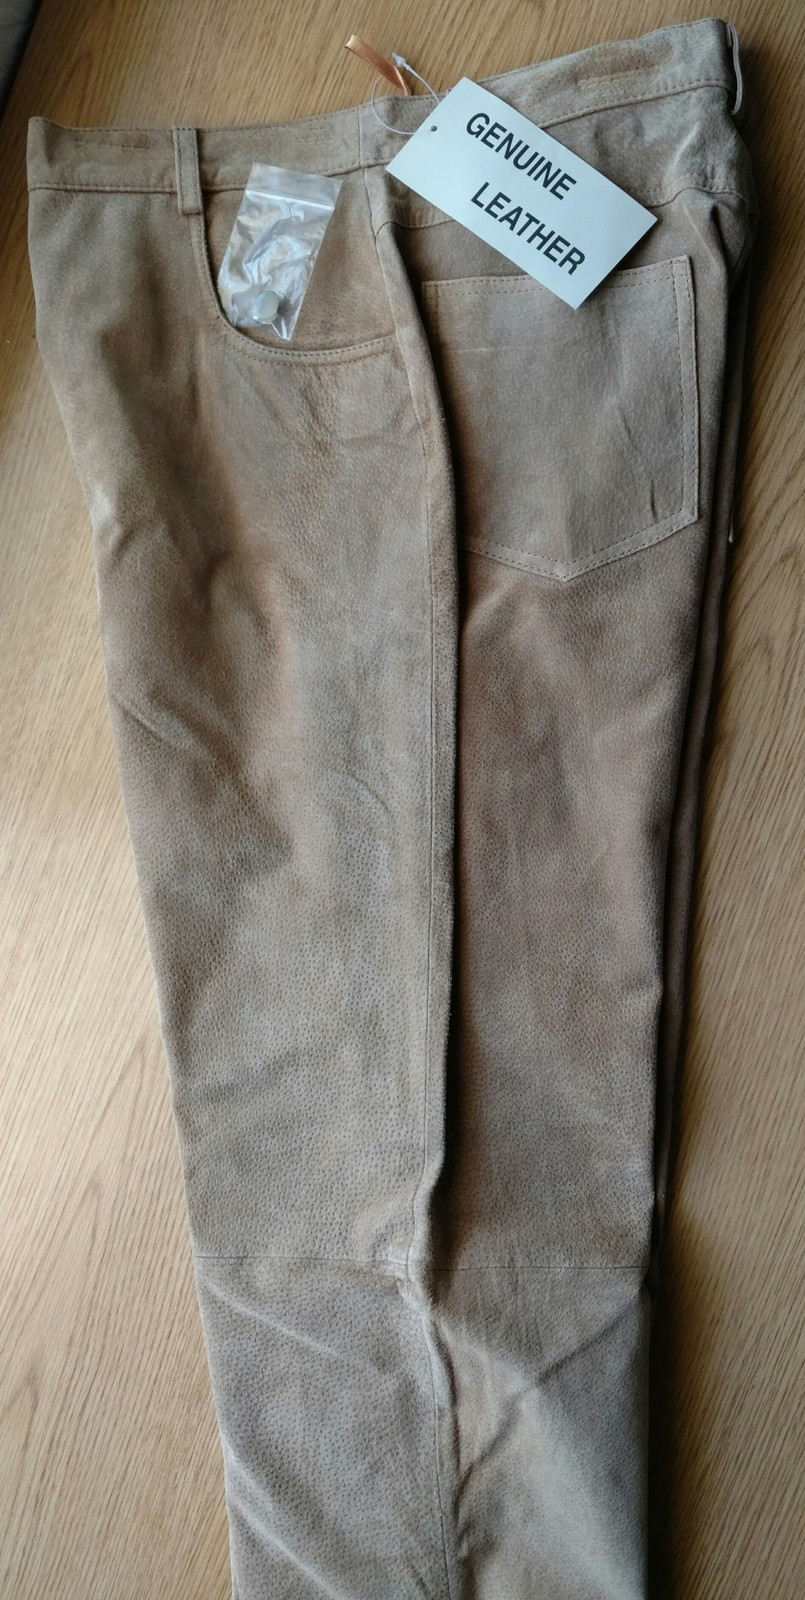 Primary image for Ladies Genuine Suede Leather 5-Pocket Jeans Size 8